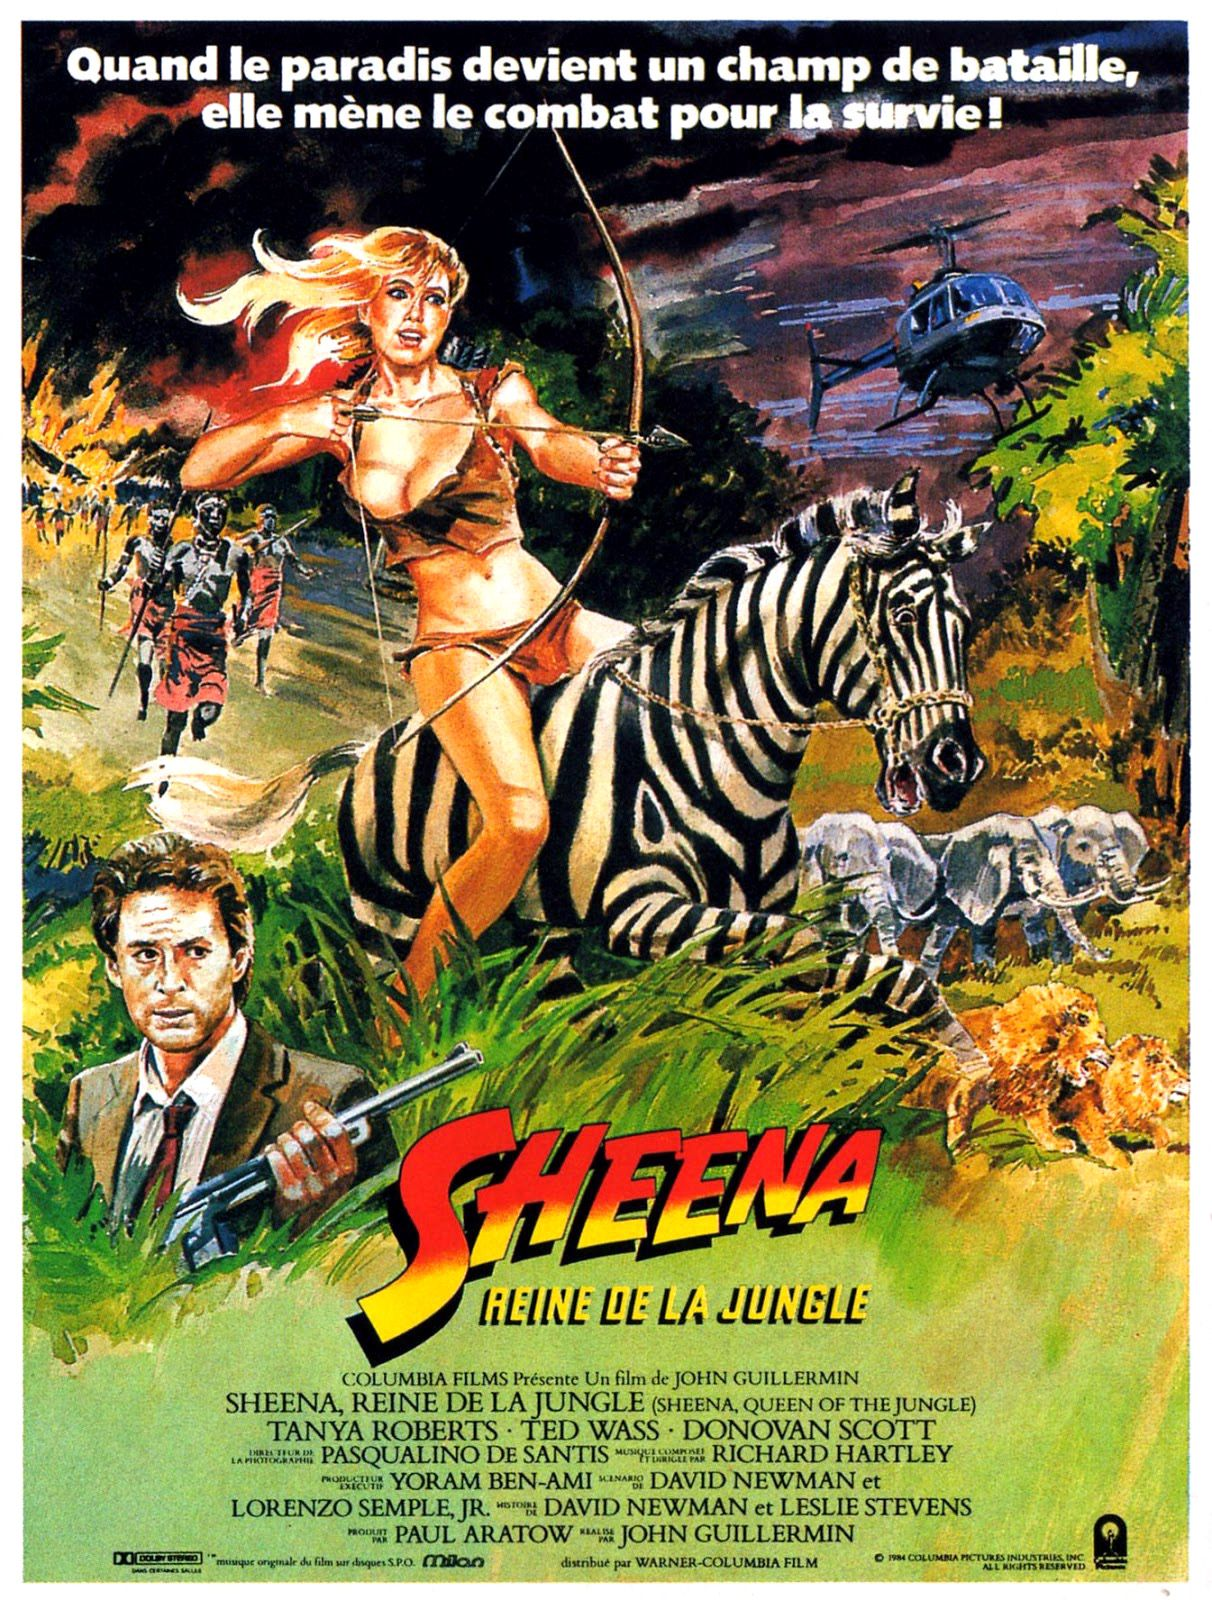 Sheena, reine de la jungle (film)